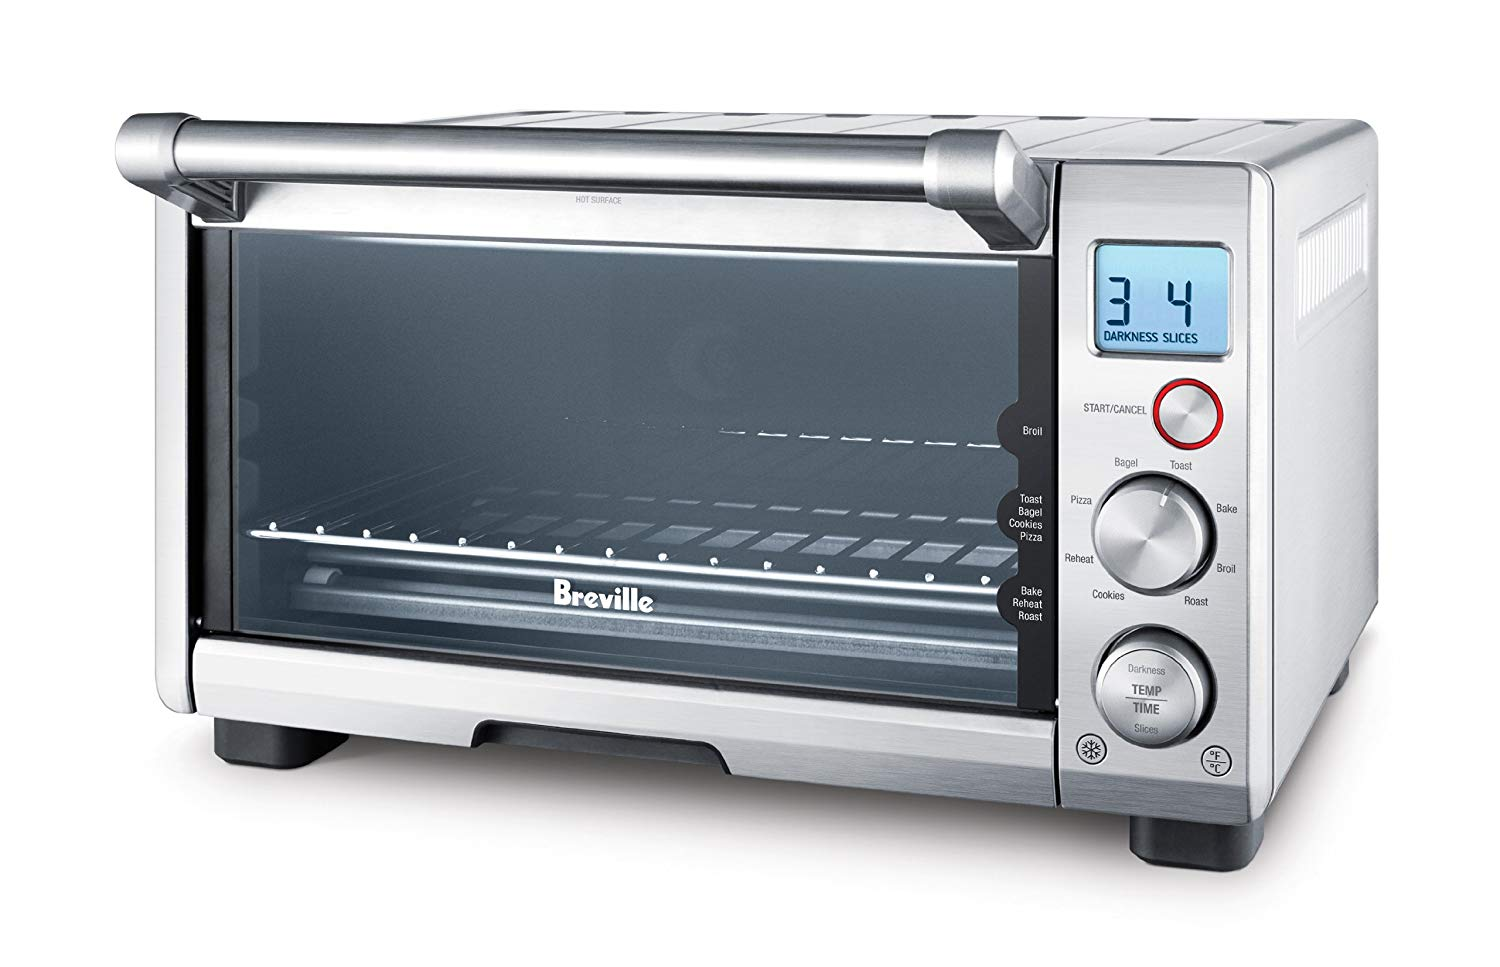 BREVILLE the Compact Smart Oven, Countertop Electric Toaster Oven